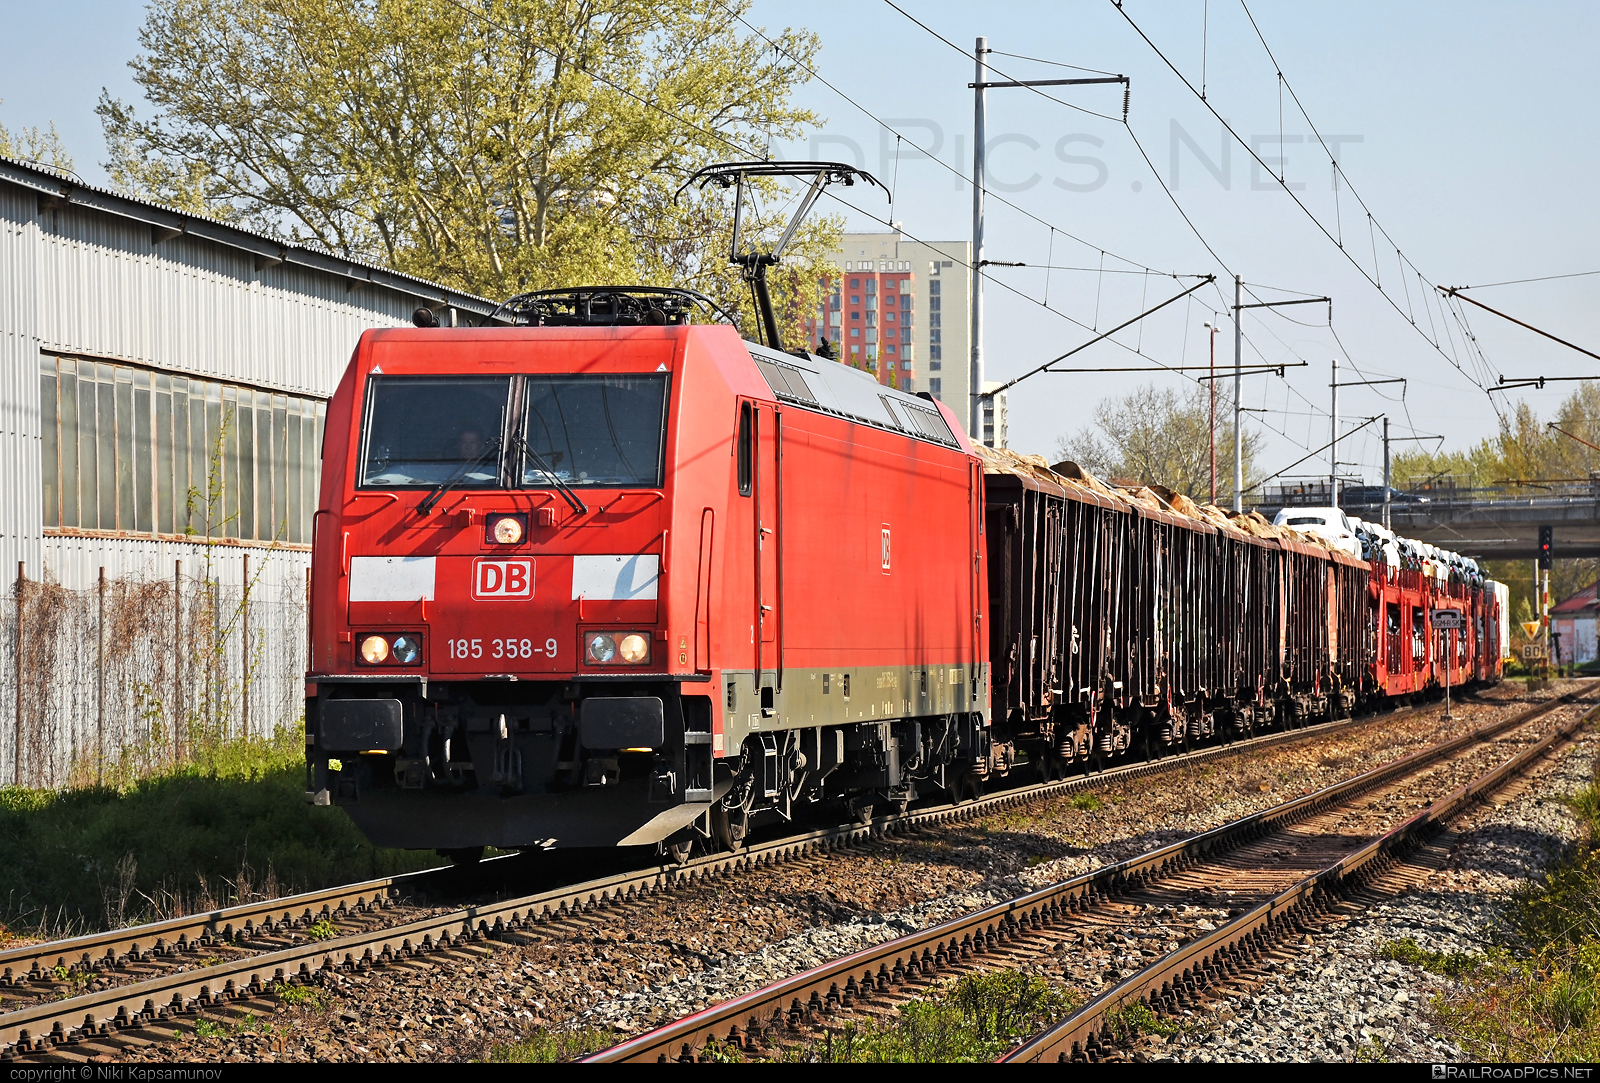 Bombardier TRAXX F140 AC2 - 185 358-9 operated by DB Cargo AG #bombardier #bombardiertraxx #db #dbcargo #dbcargoag #deutschebahn #traxx #traxxf140 #traxxf140ac #traxxf140ac2